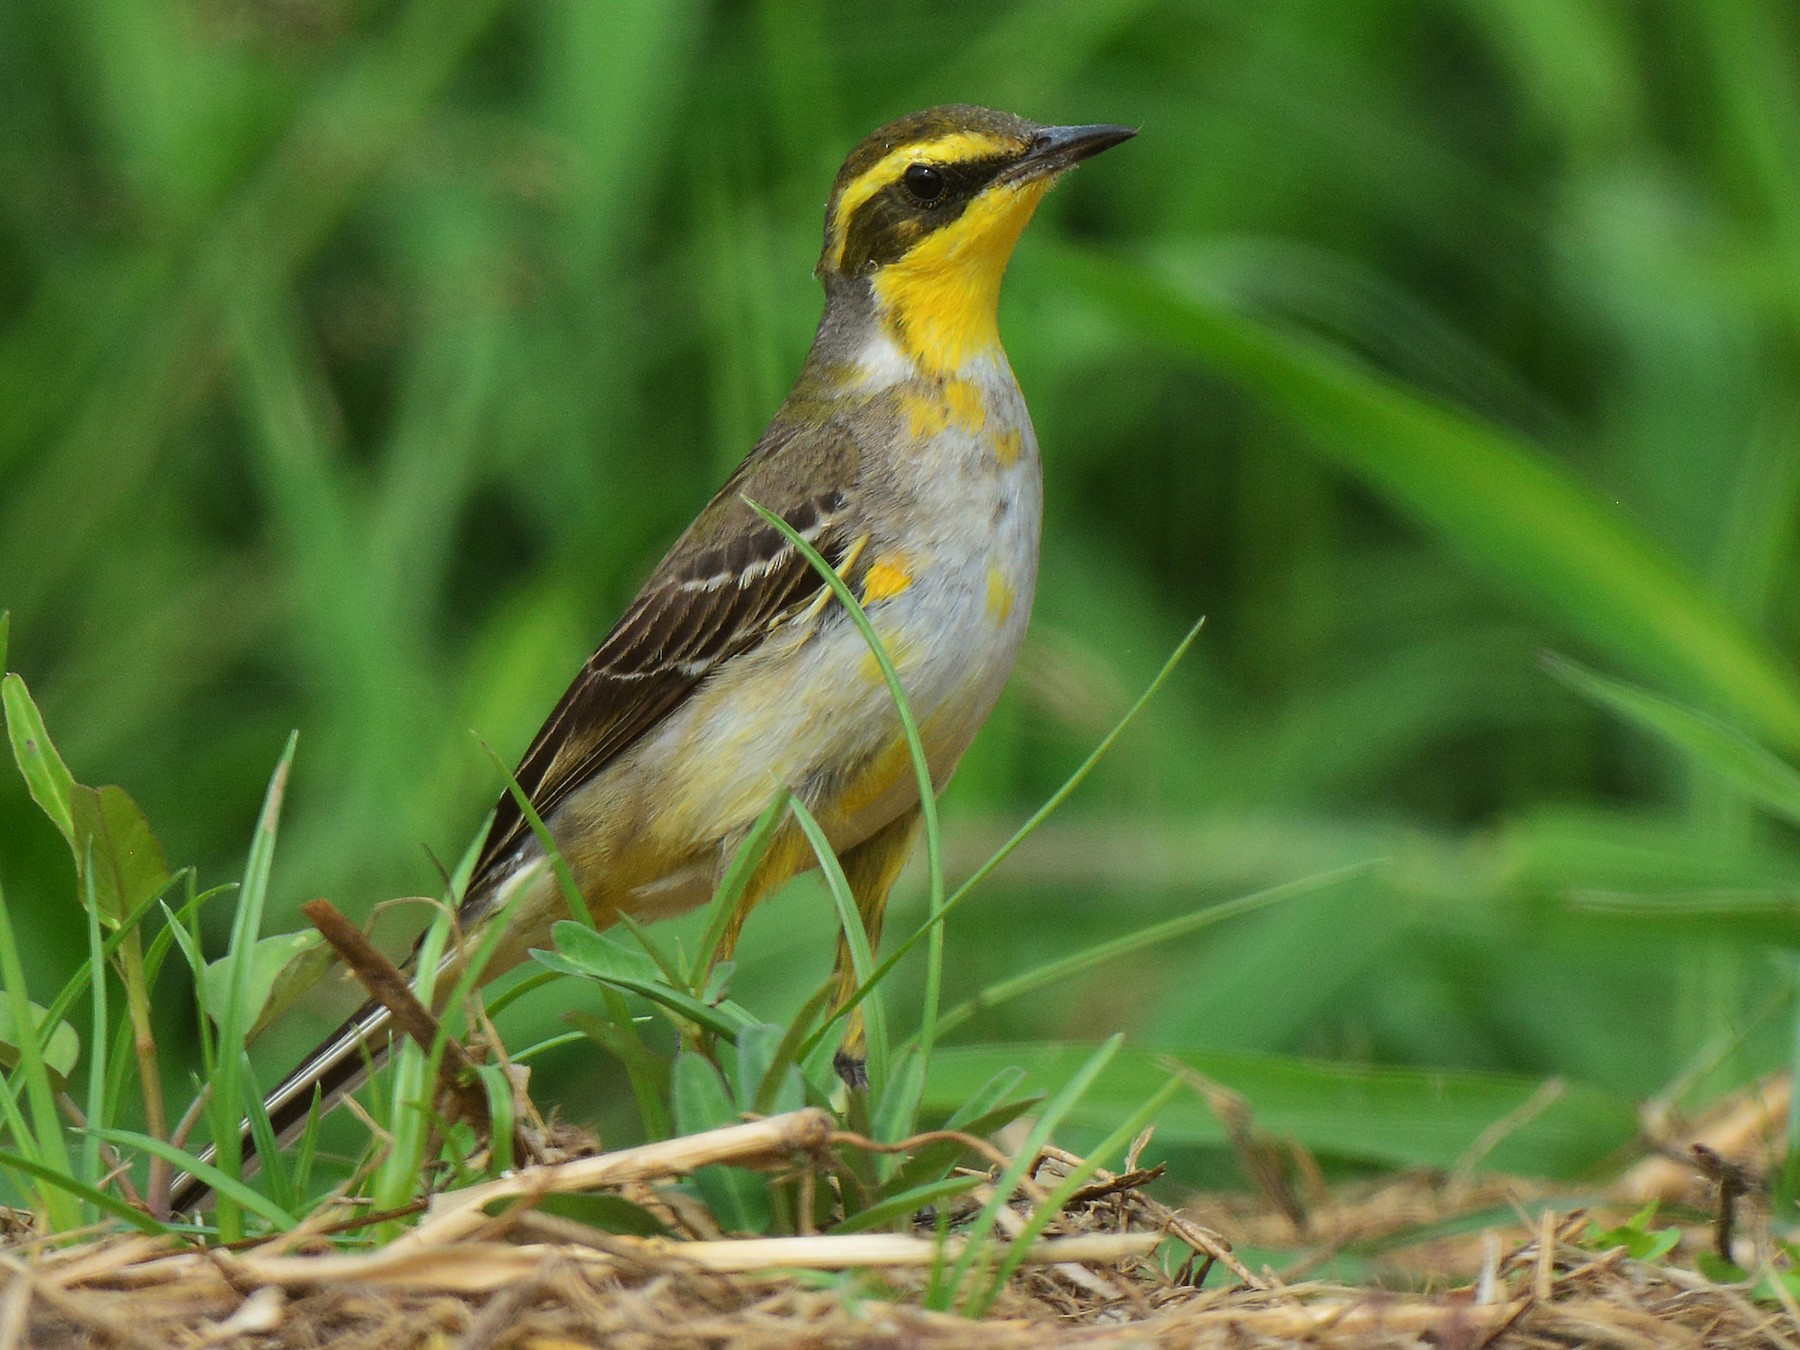 Eastern Yellow Wagtail - Jhih-Wei (志偉) TSAI (蔡)